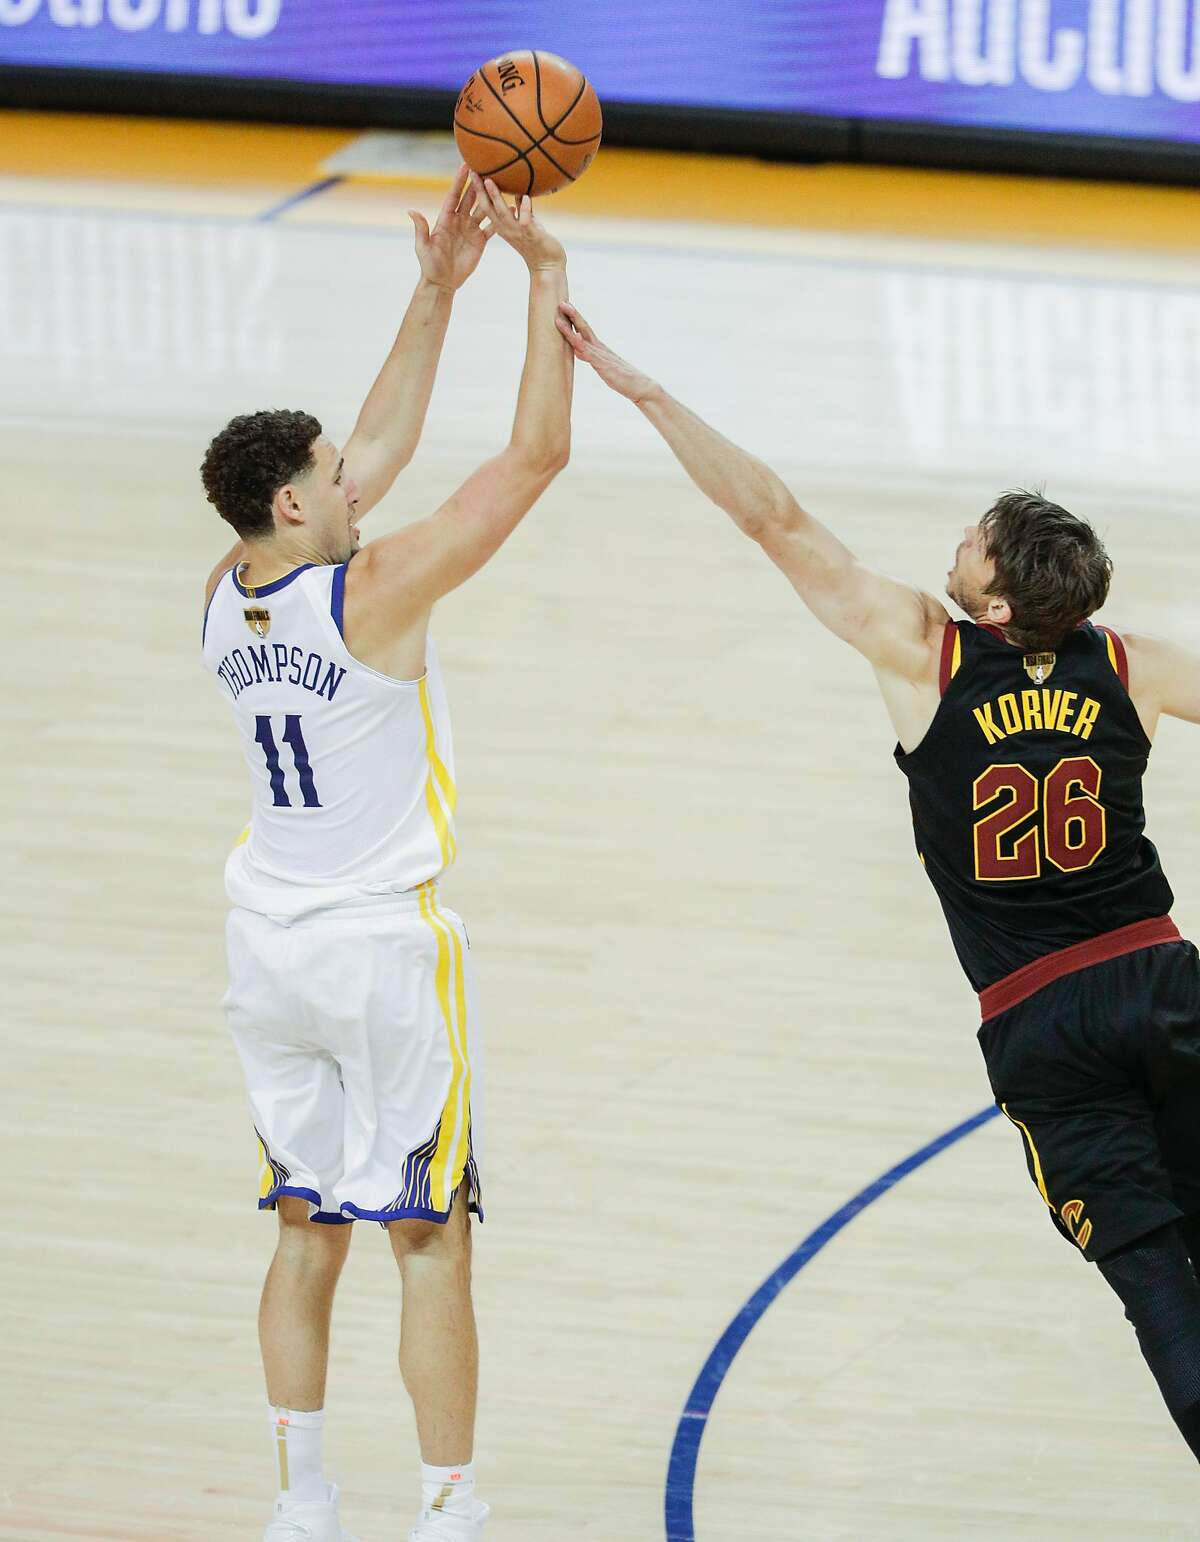 Cleveland Cavaliers' Kyle Korver fouls Golden State Warriors' Klay Thompson in the fourth quarter during game 1 of The NBA Finals between the Golden State Warriors and the Cleveland Cavaliers at Oracle Arena on Thursday, May 31, 2018 in Oakland, Calif.